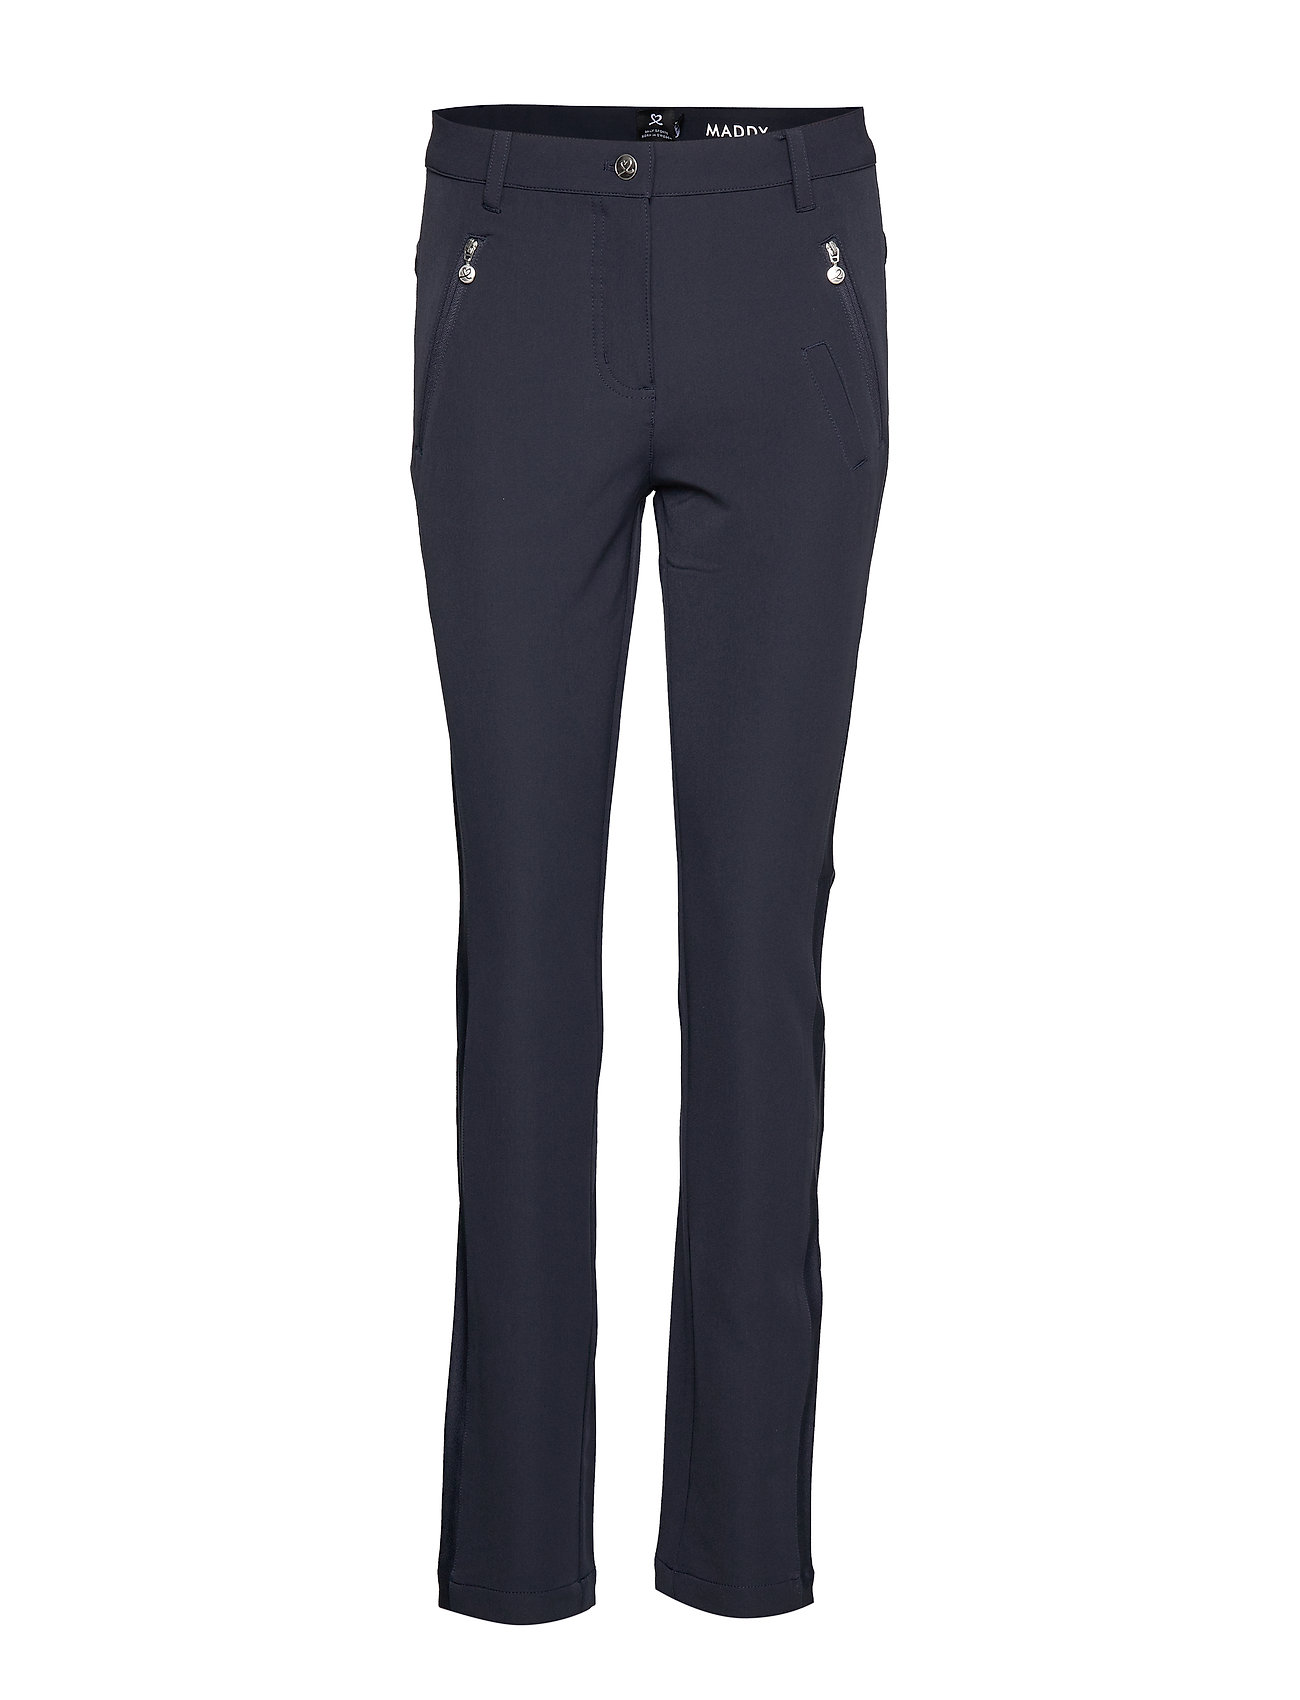 Daily Sports MADDY PANTS 32 INCH - NAVY